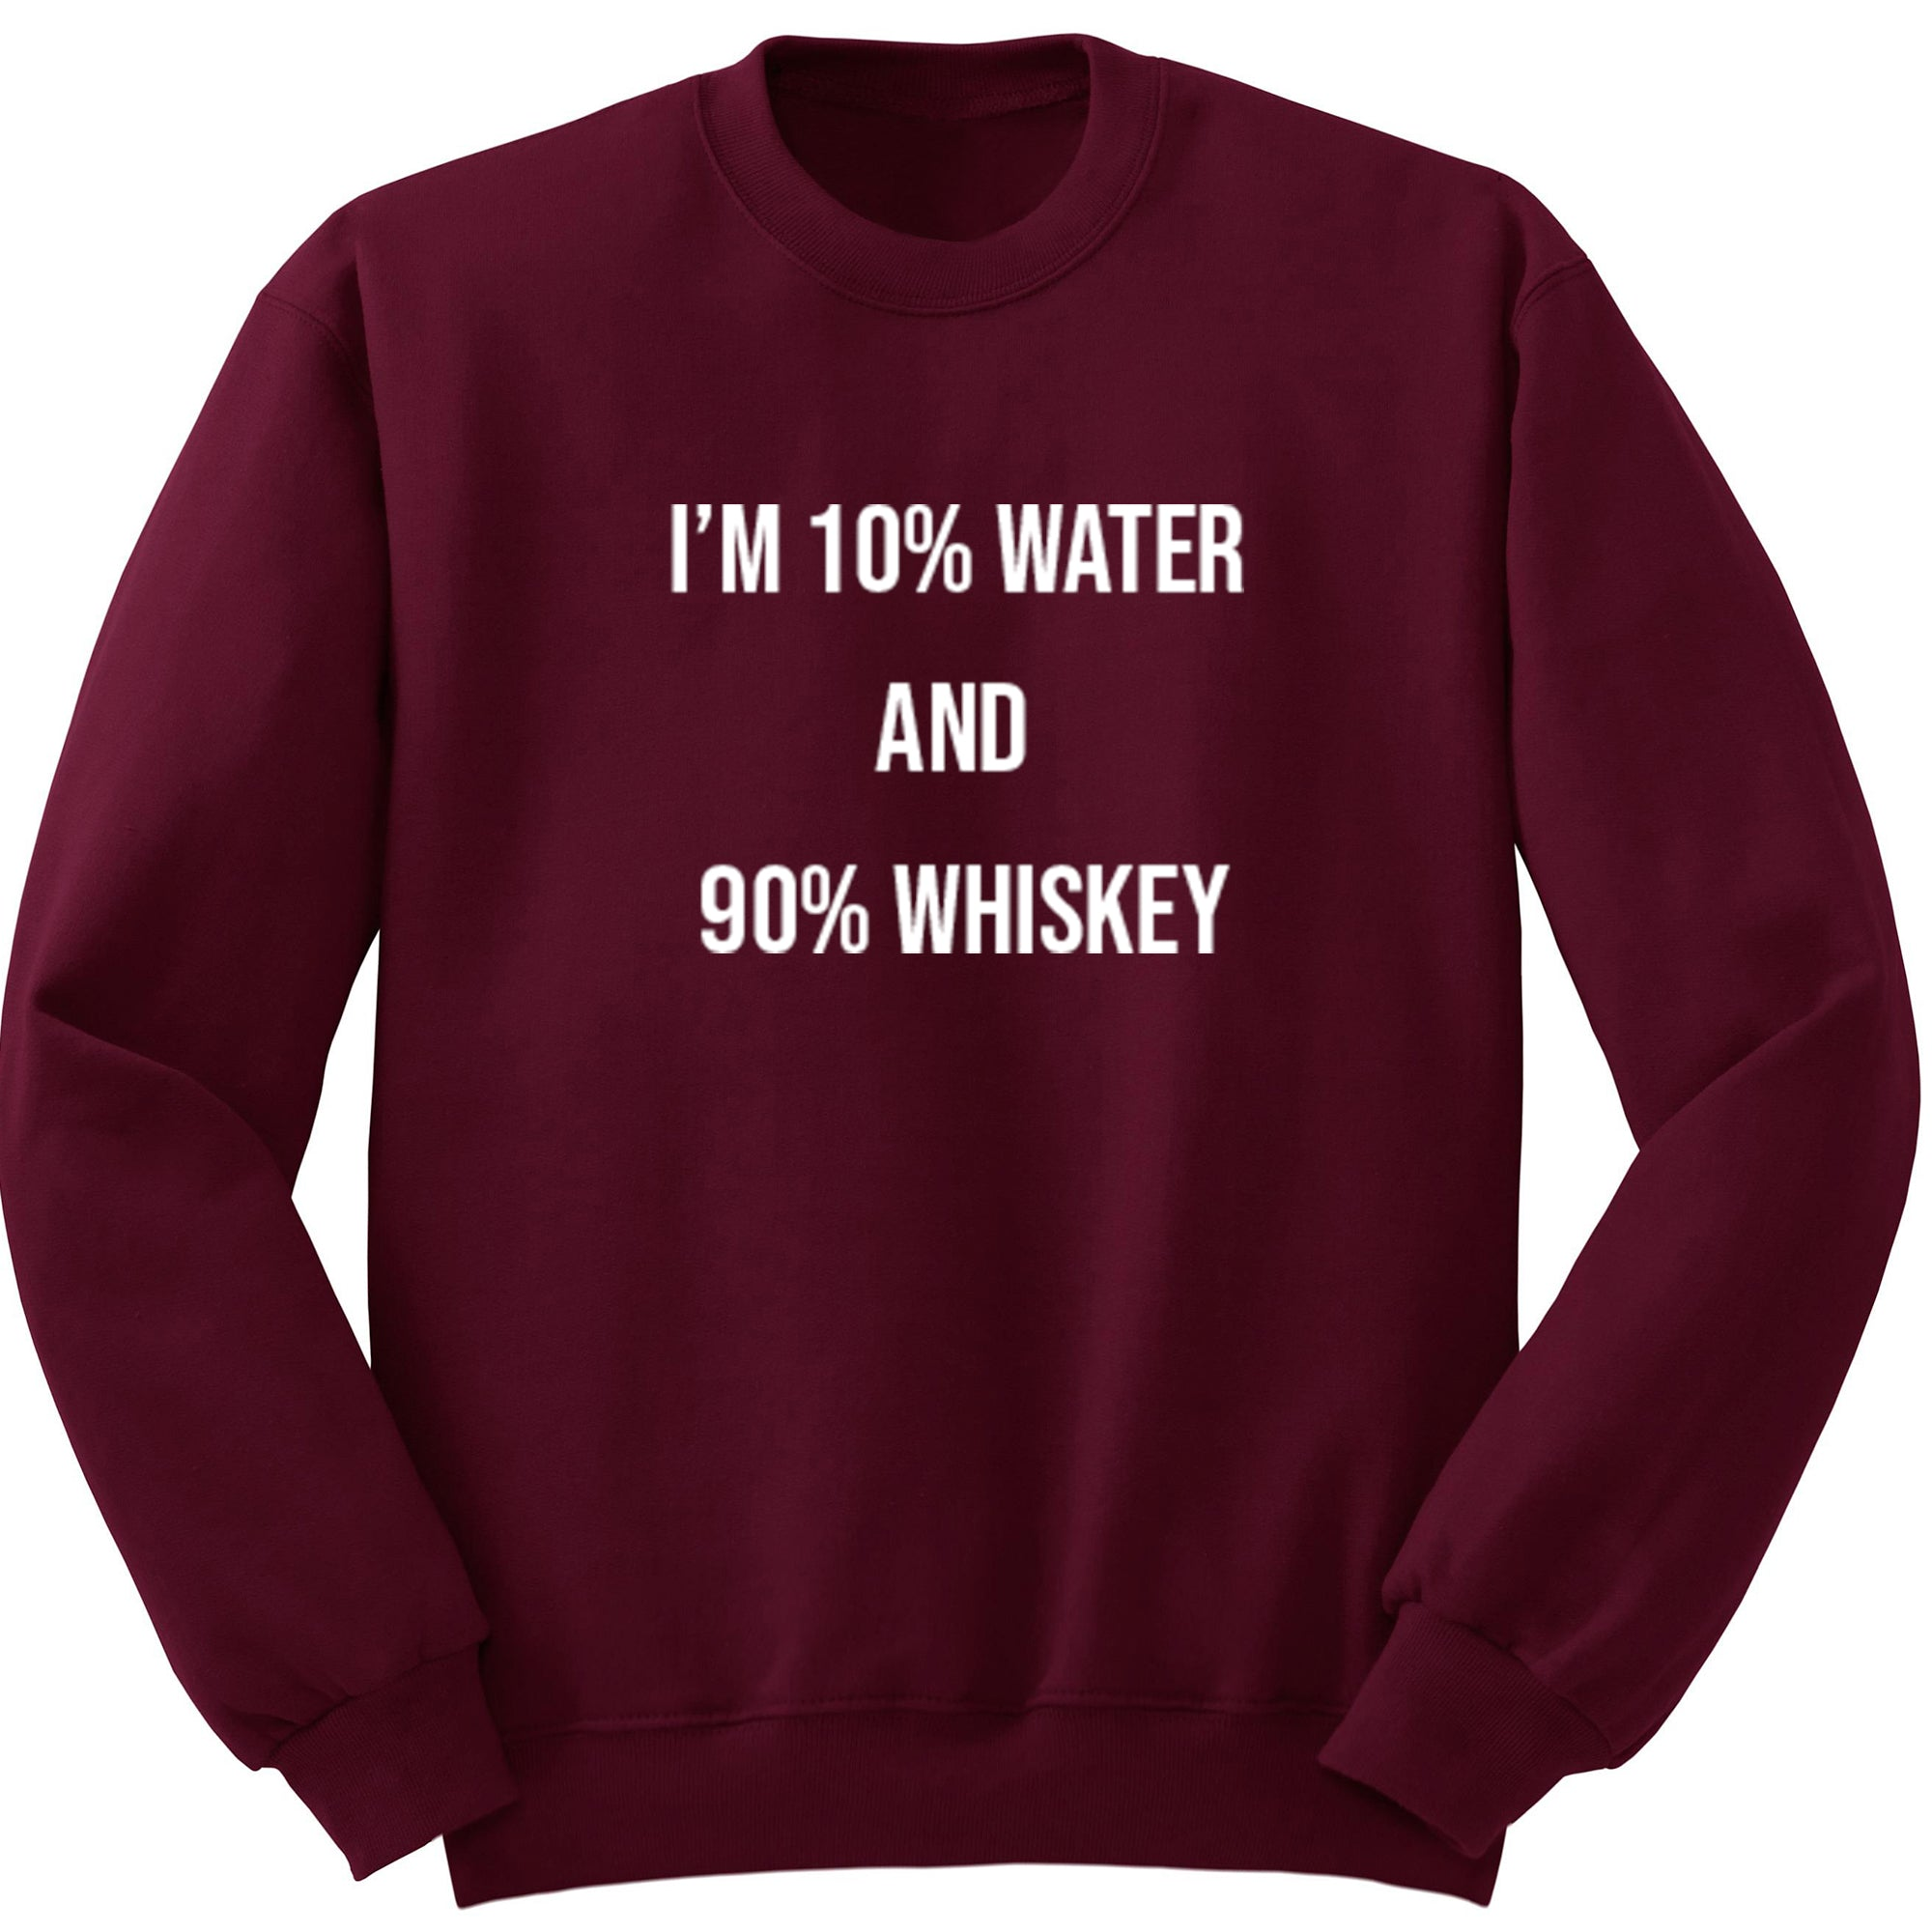 I'm 10% Water And 90% Whiskey Unisex Jumper S0497 - Illustrated Identity Ltd.